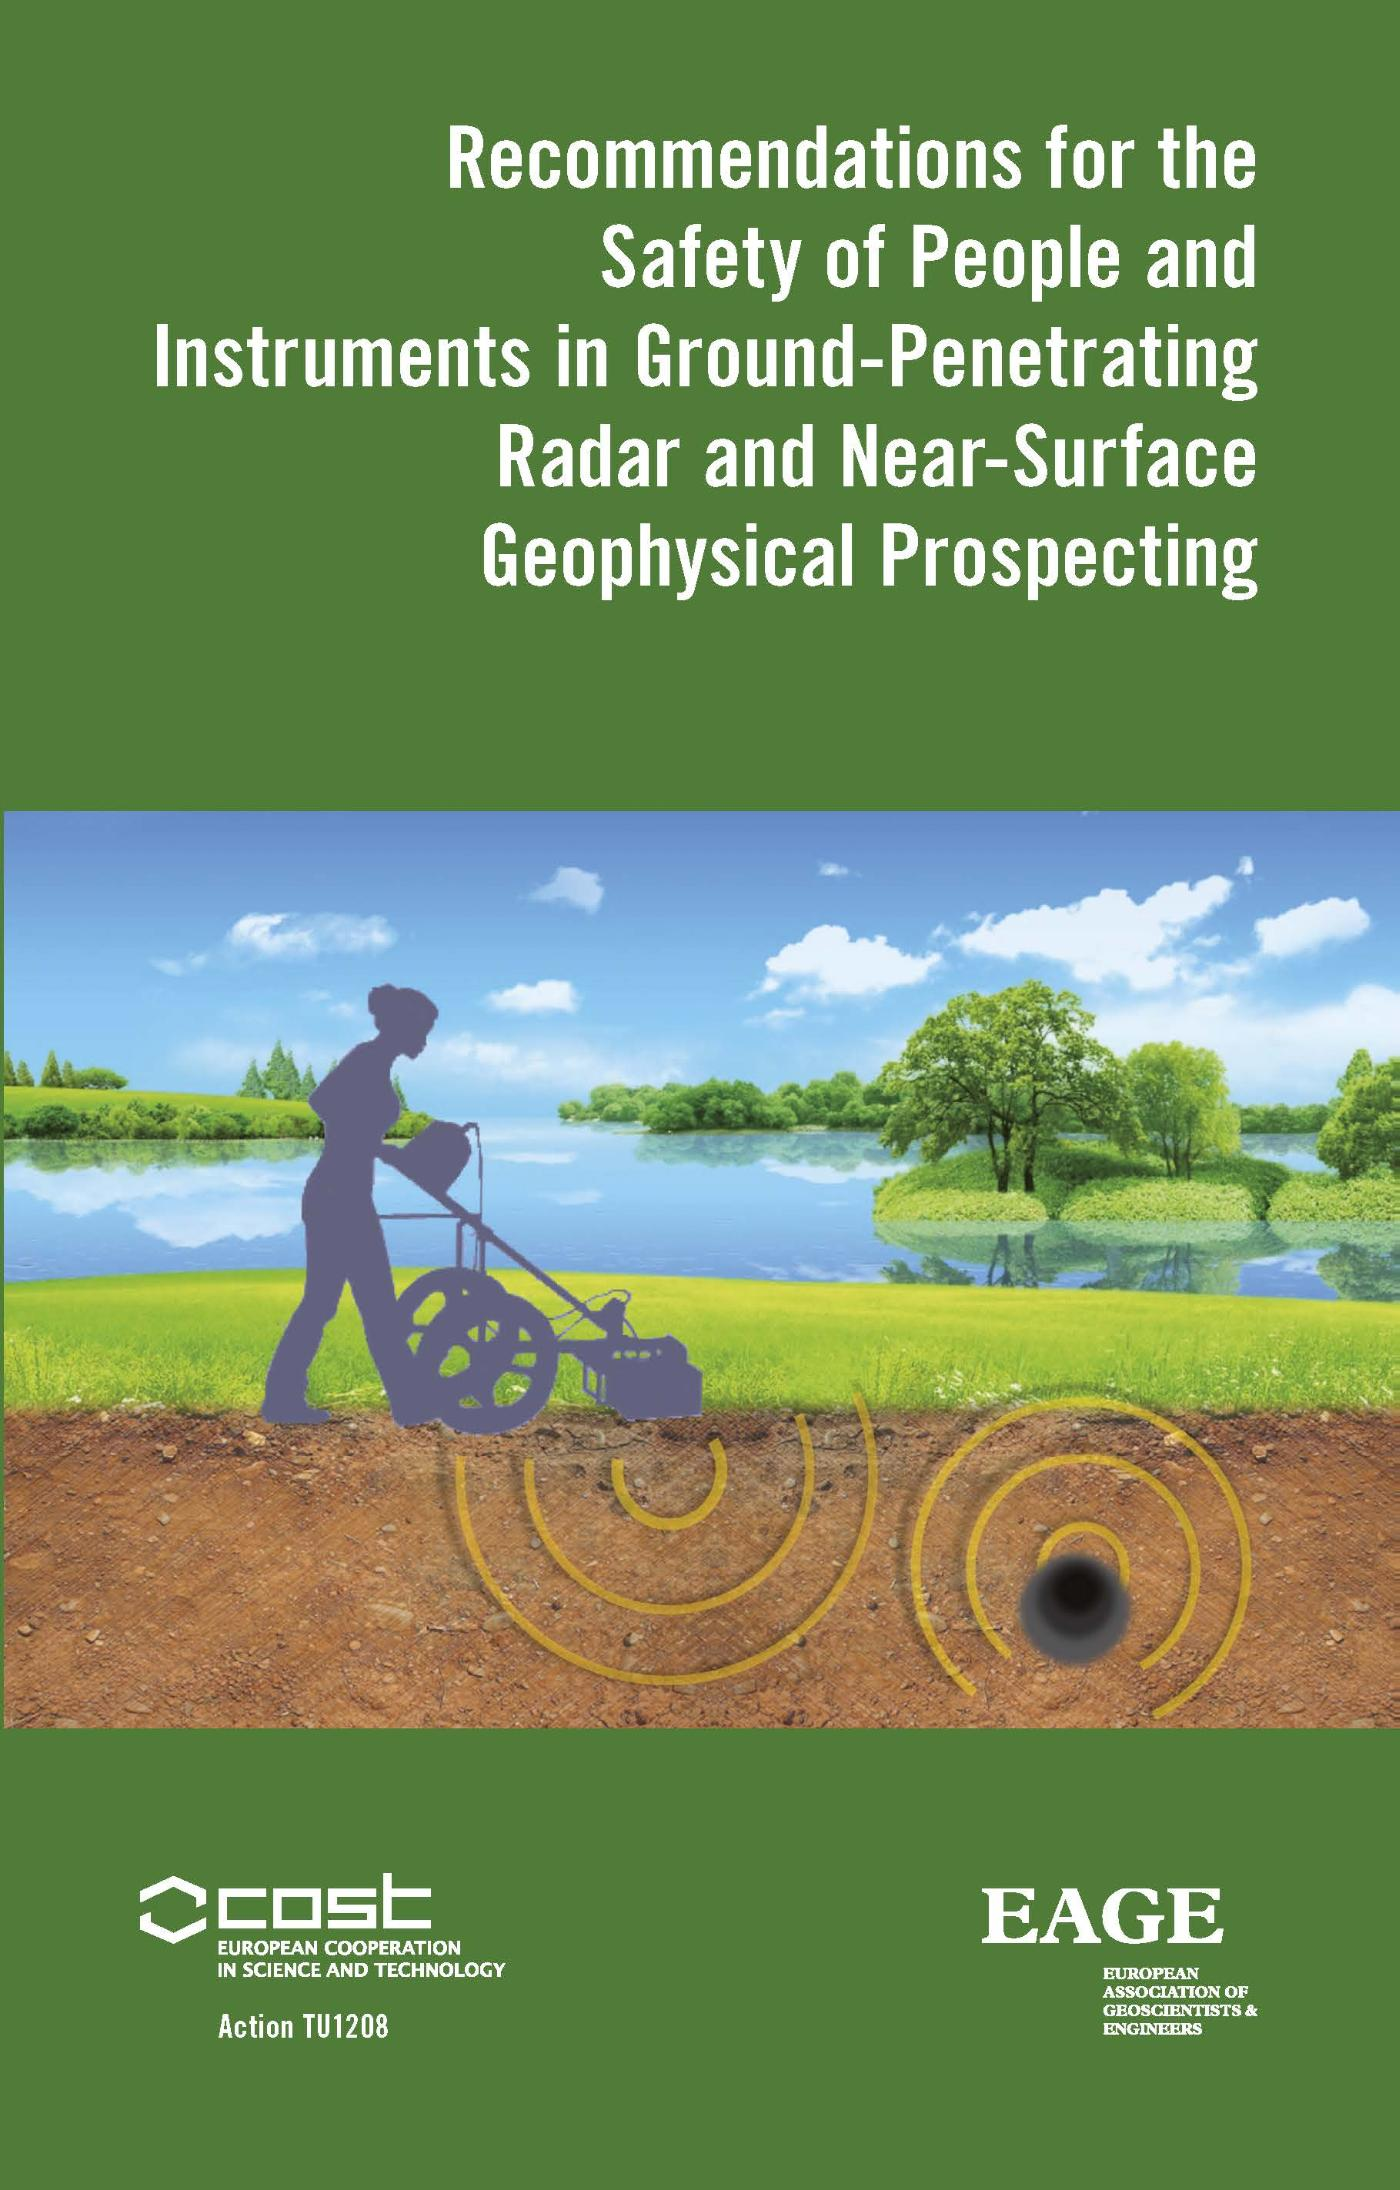 Recommendations for the safety of people and instruments in ground-penetrating radar and near-surface geophysical prospecting